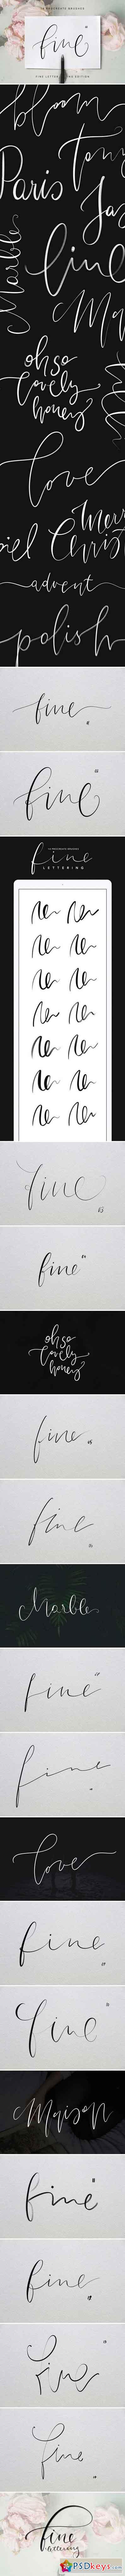 Procreate Fine Lettering Brushes 2143002